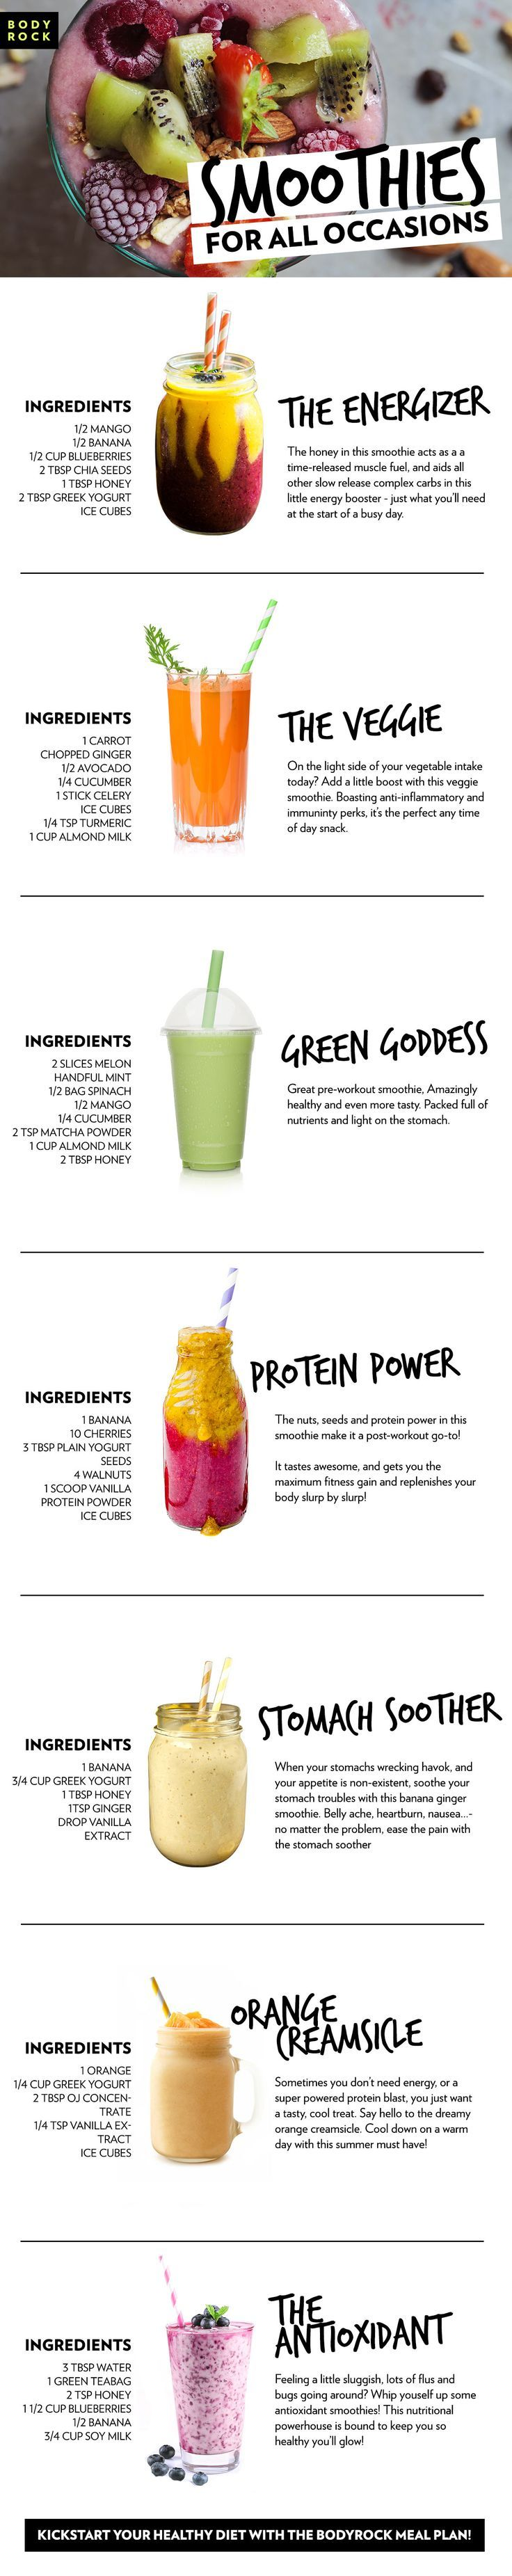 A smoothie recipe for all occasions!